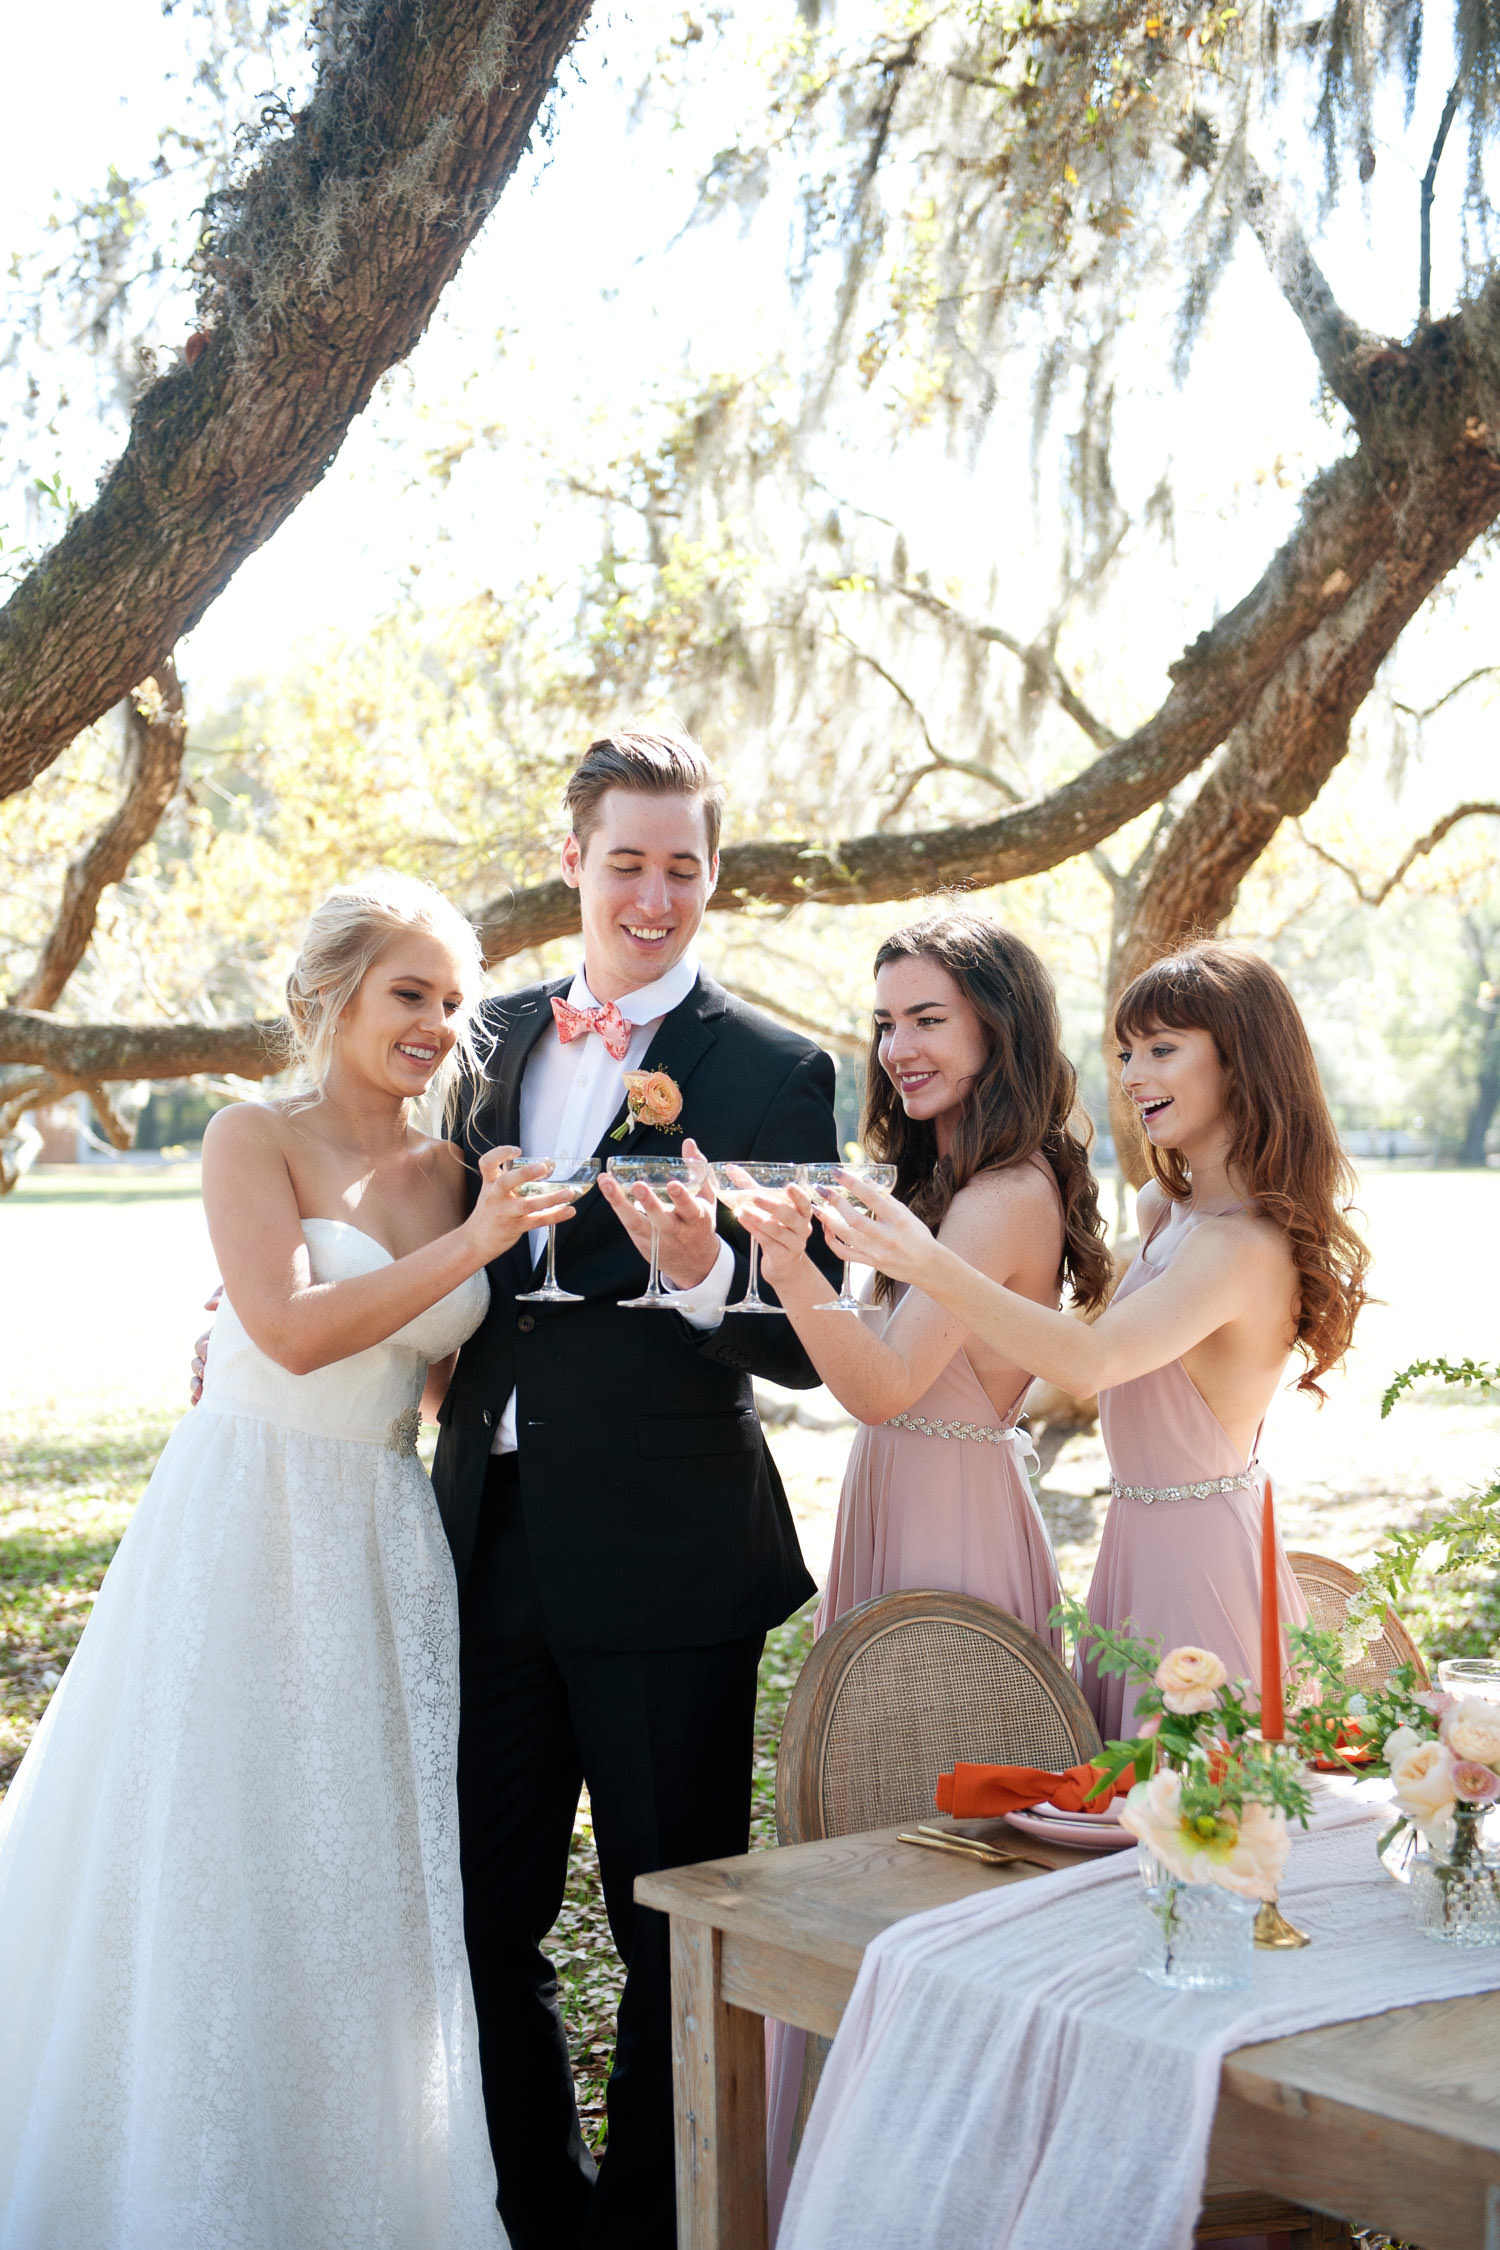 Toast at a garden wedding at Middleton Place captured by Tara Whittaker Photography